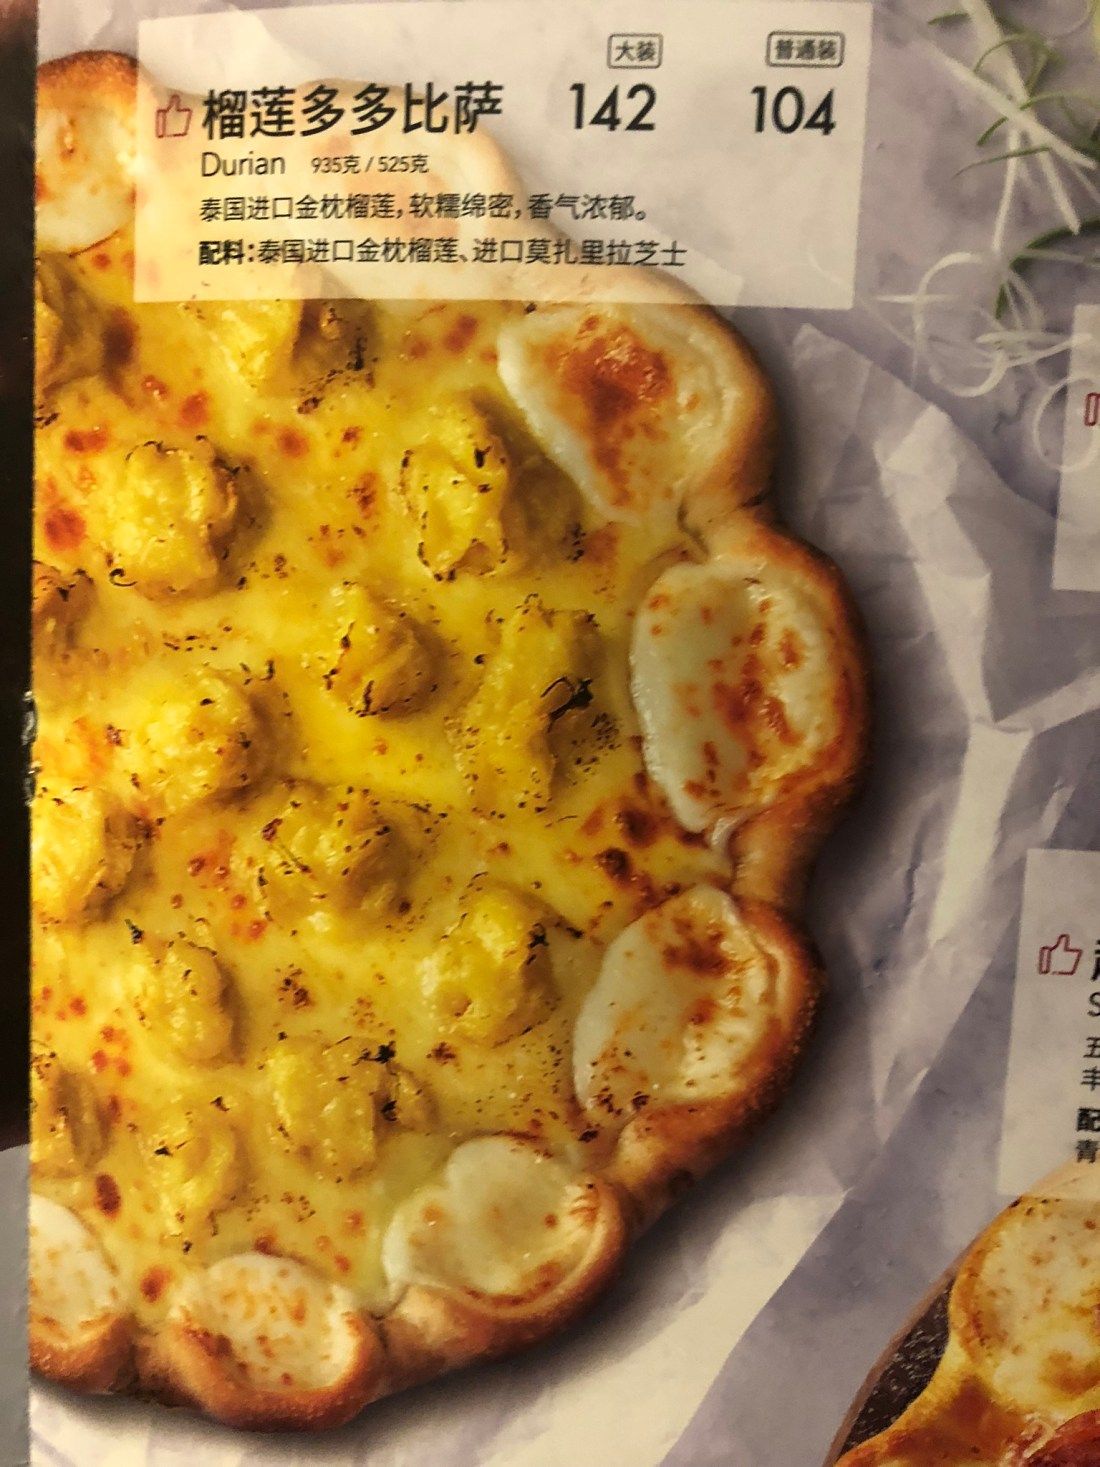 Durian pizza in Beijing Airport